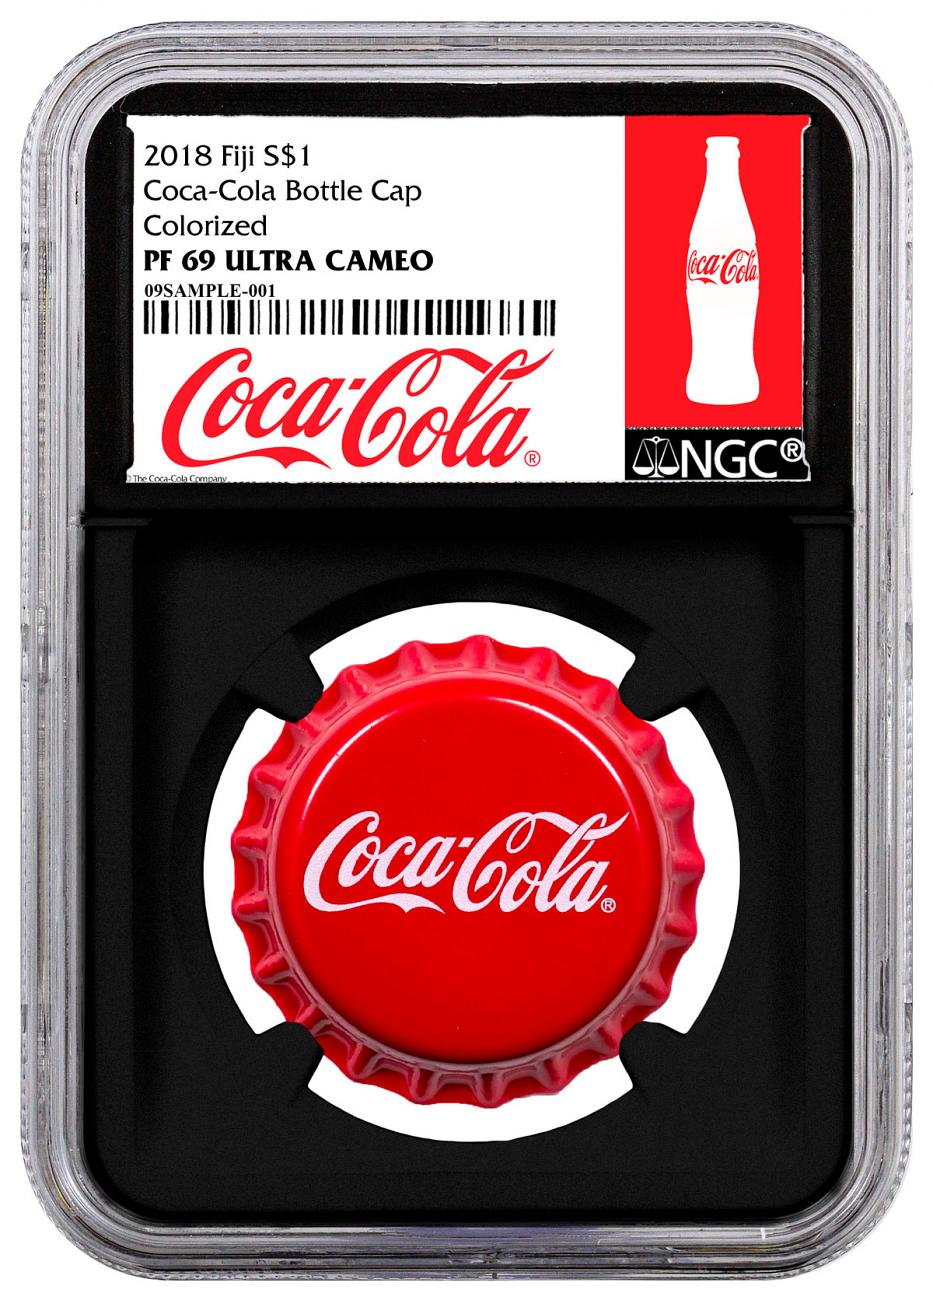 2018 Fiji Coca-Cola Bottle Cap-Shaped 6 g Silver Colorized Proof $1 Coin NGC PF69 Black Core Holder Exclusive Coca-Cola Label